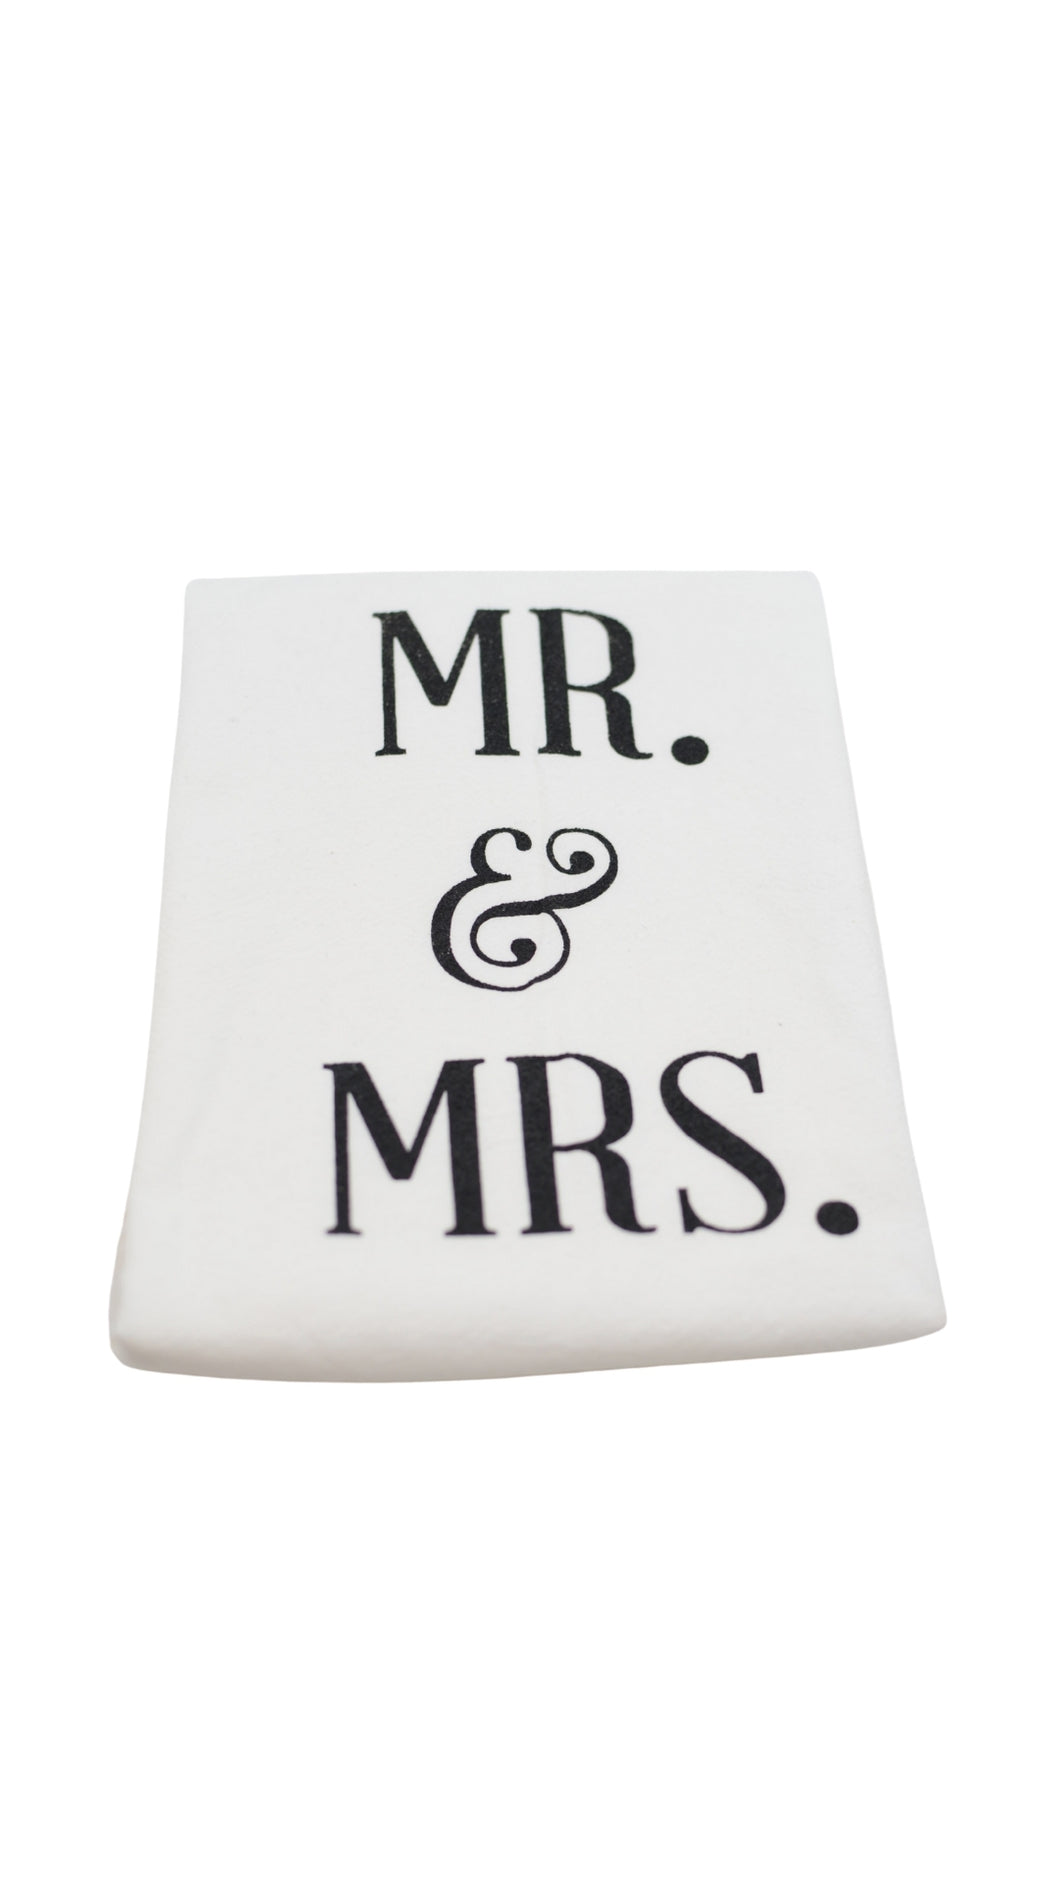 Mr. & Mrs. Tea Towel